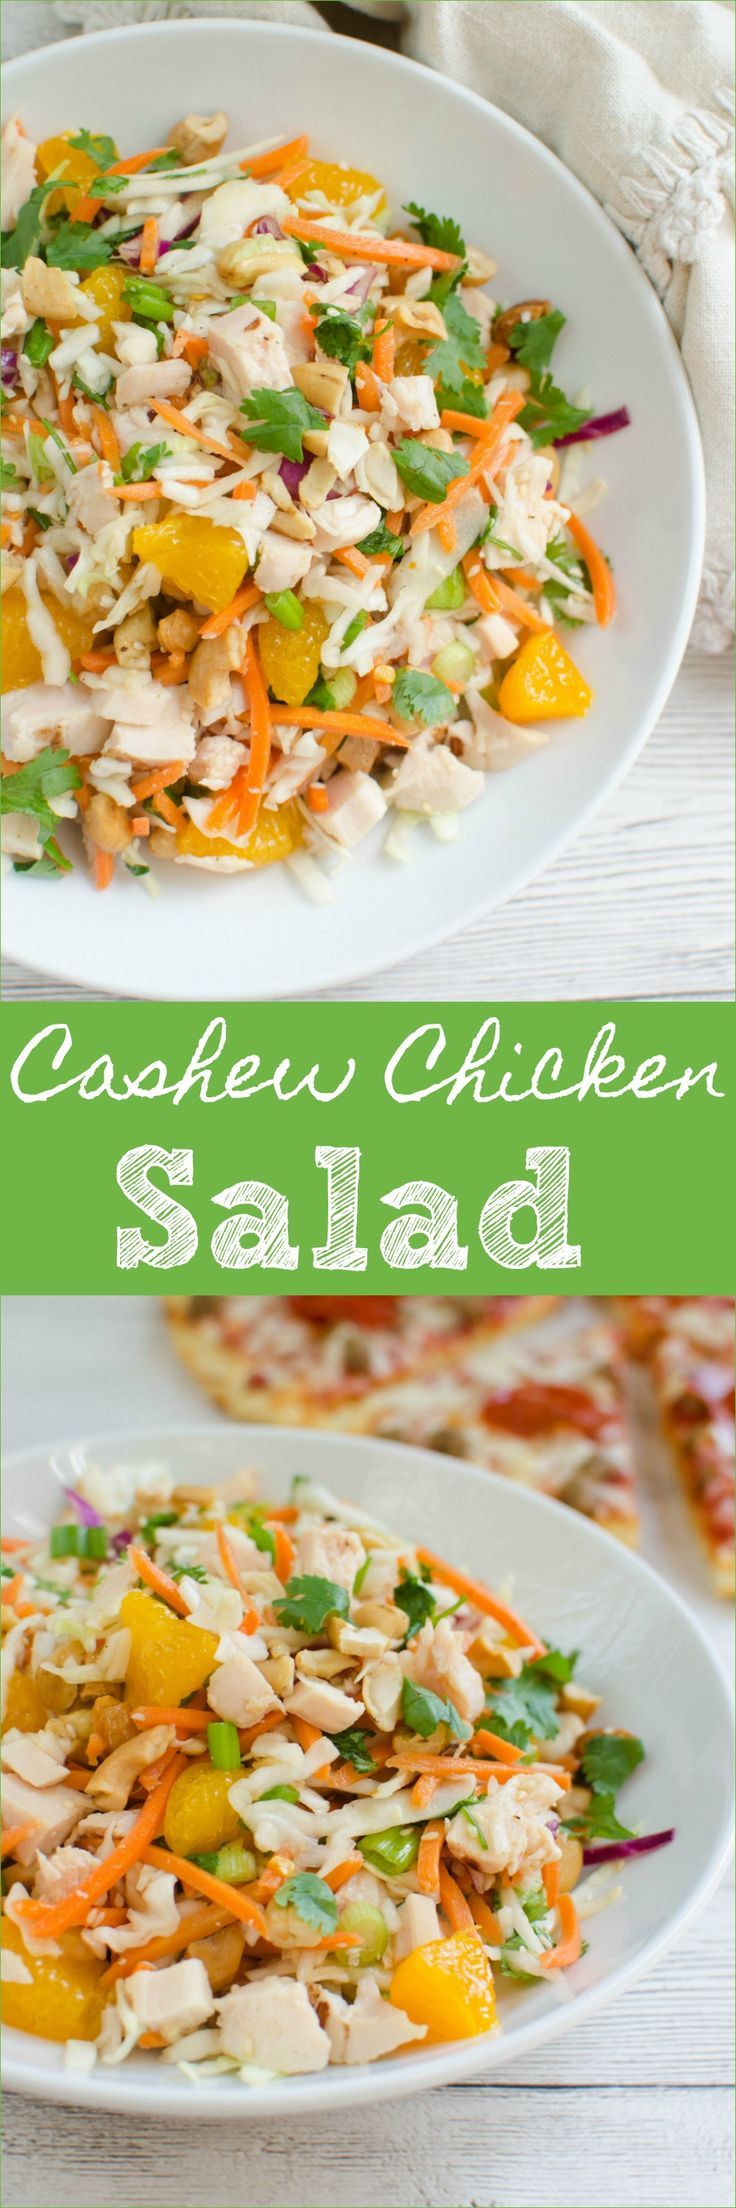 Cashew Chicken Chopped Salad - chicken, veggies, mandarin oranges, and cashews tossed in a sweet and sour dressing! My kids LOVE this salad! #WinWithTonysPizza #ad